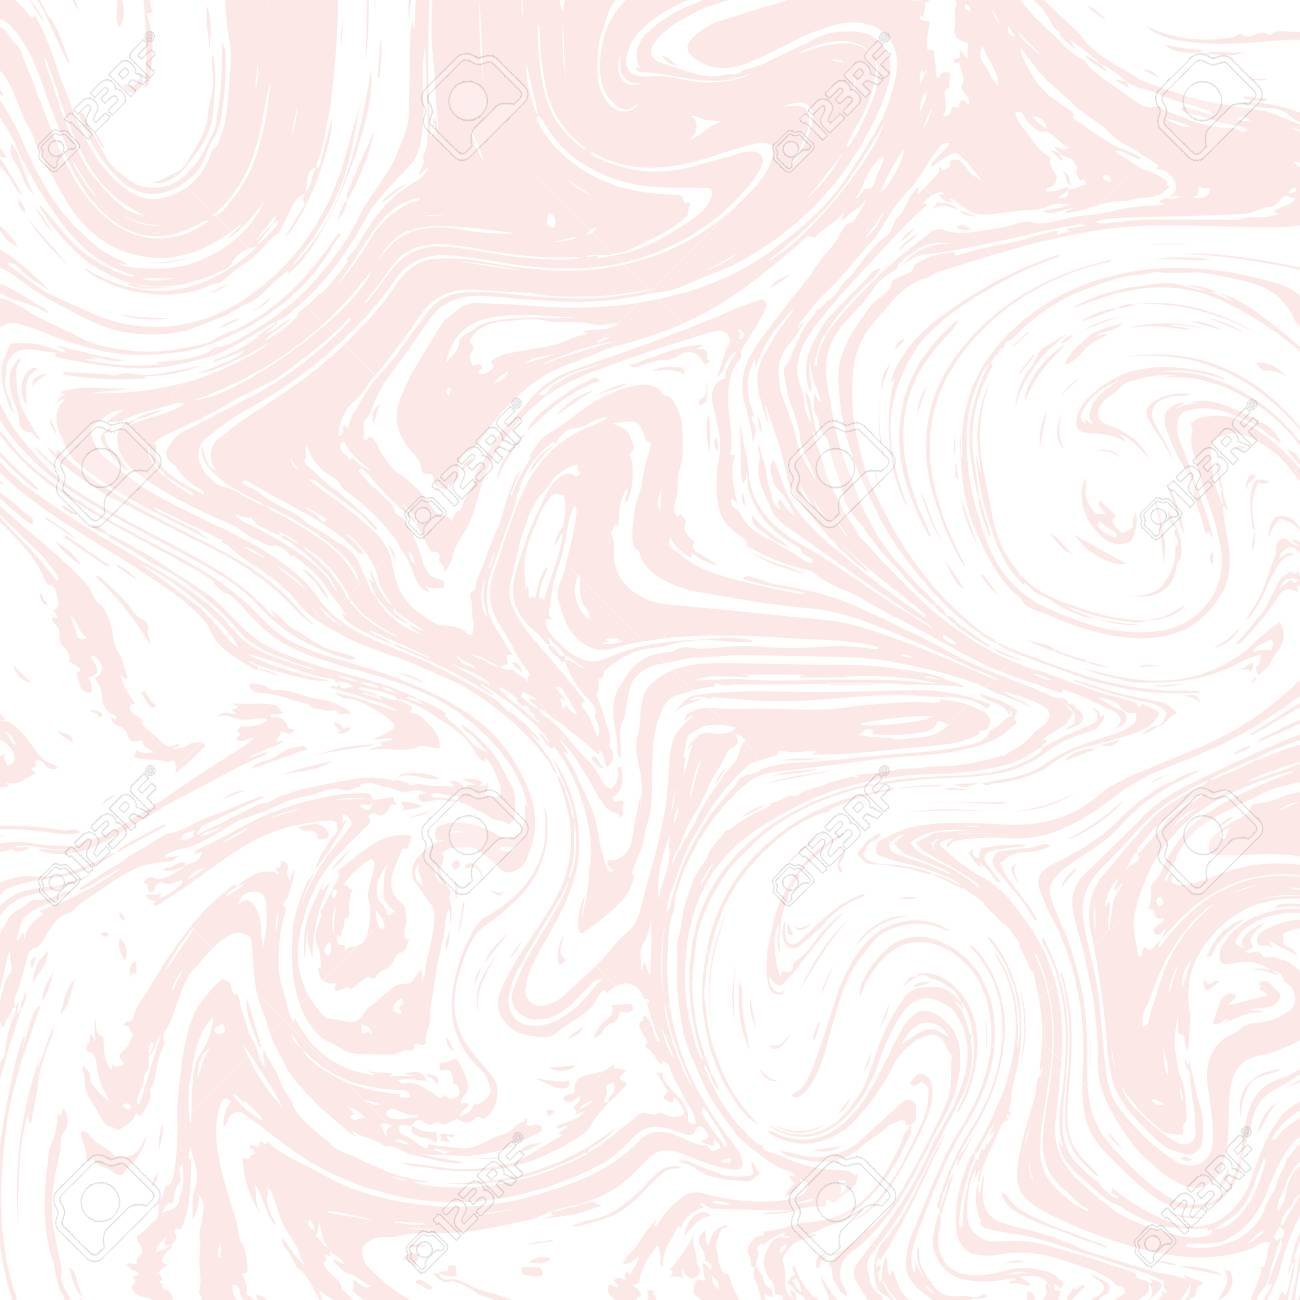 Top Wallpaper Marble Light Pink - 82918749-light-white-and-pink-marble-texture-vector-liquid-background-template-texture-wallpaper-backdrop-pat  Picture_546727.jpg